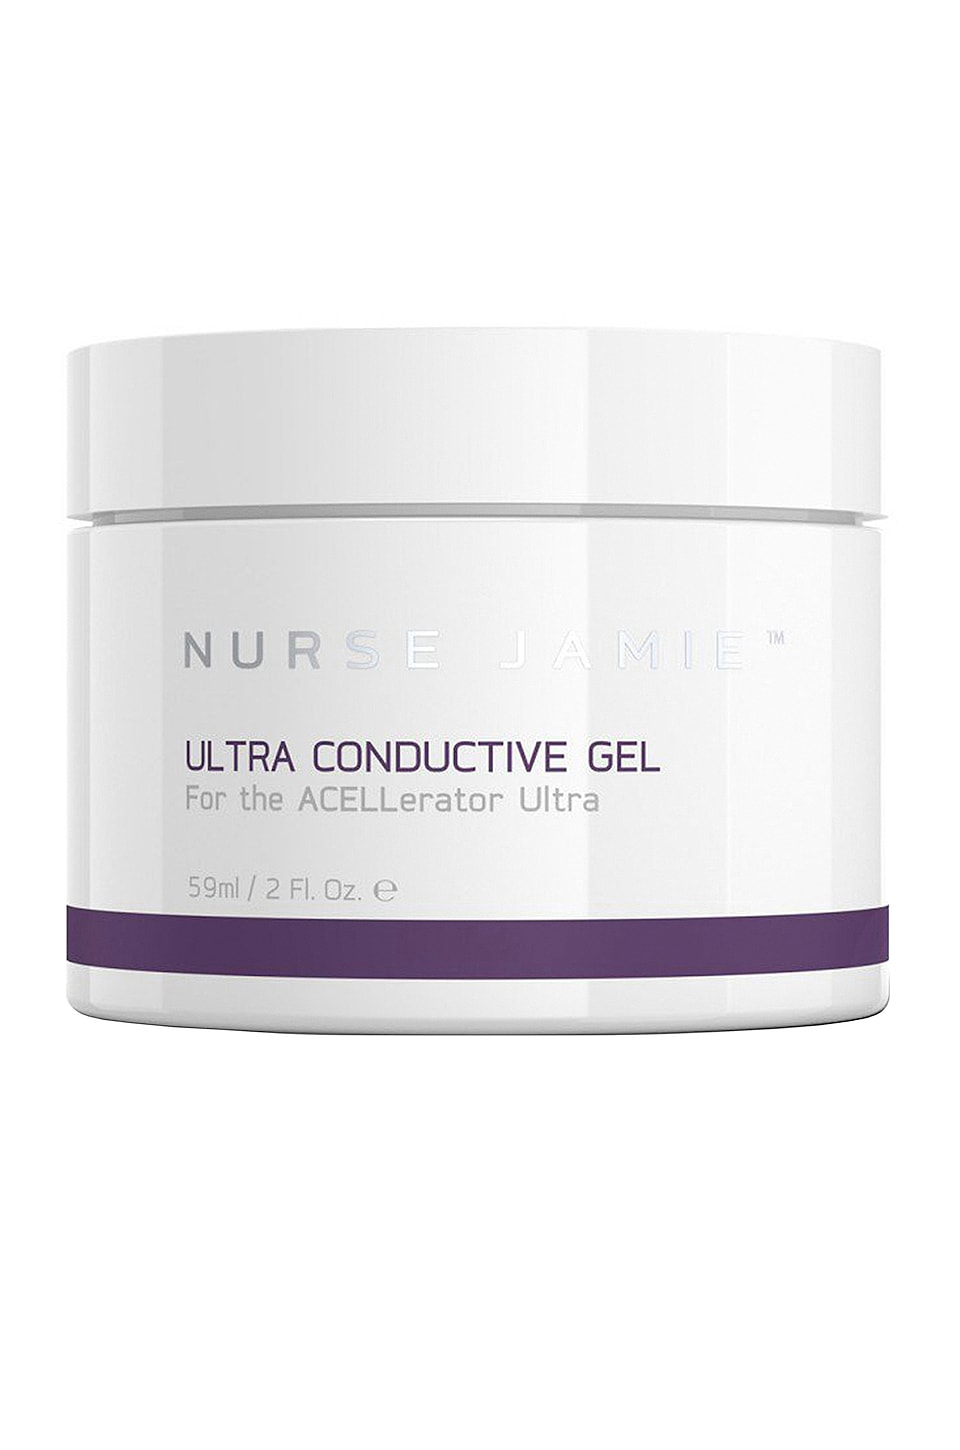 ULTRA CONDUCTIVE GEL